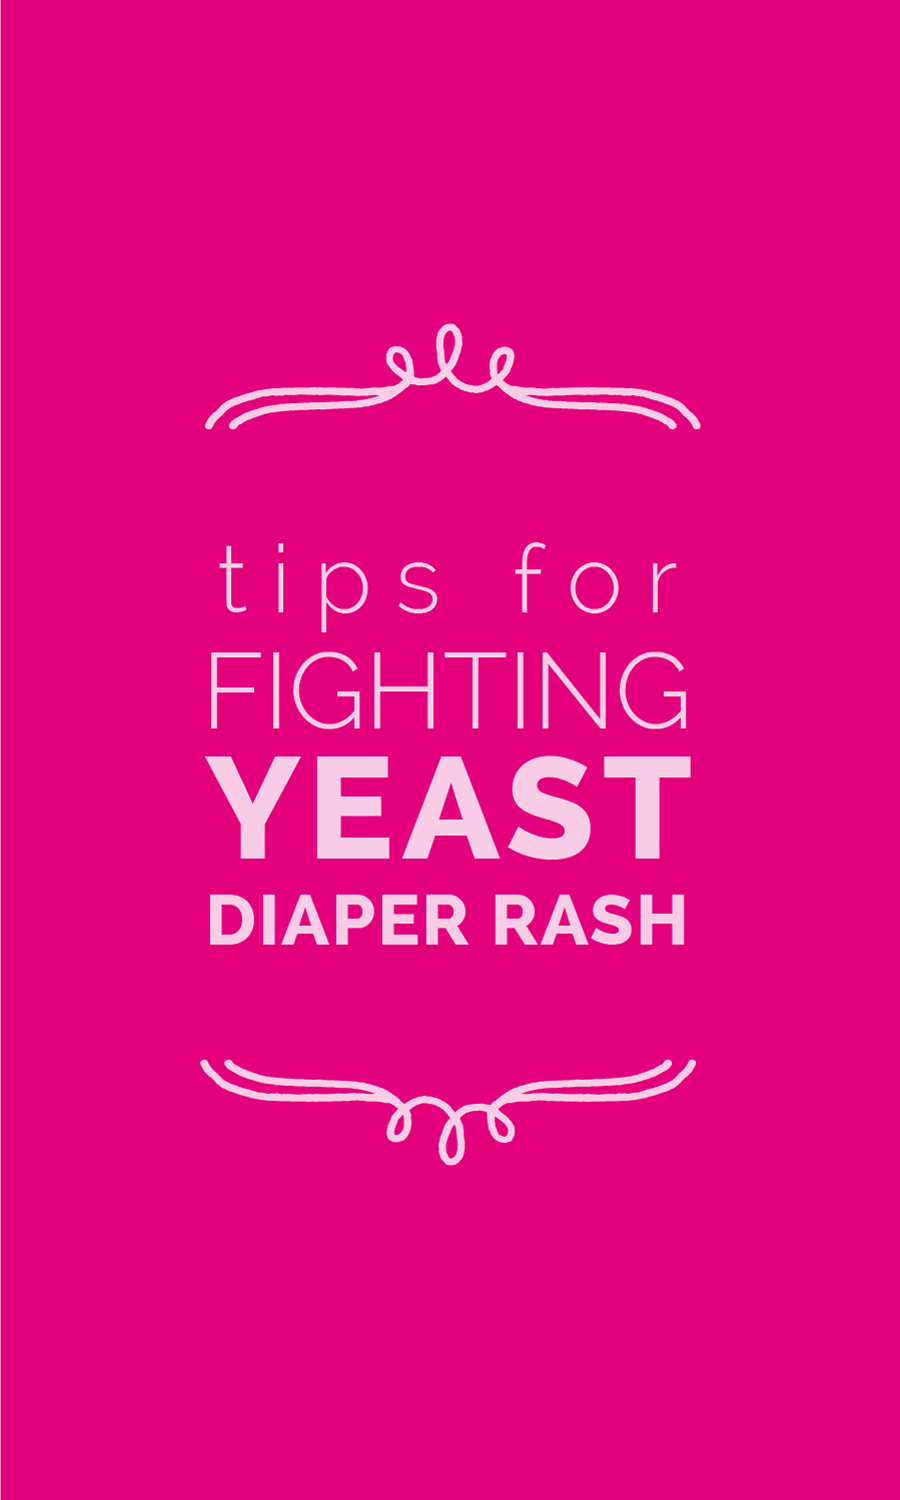 Tips for fighting yeast diaper rash. www.CanDoKiddo.com